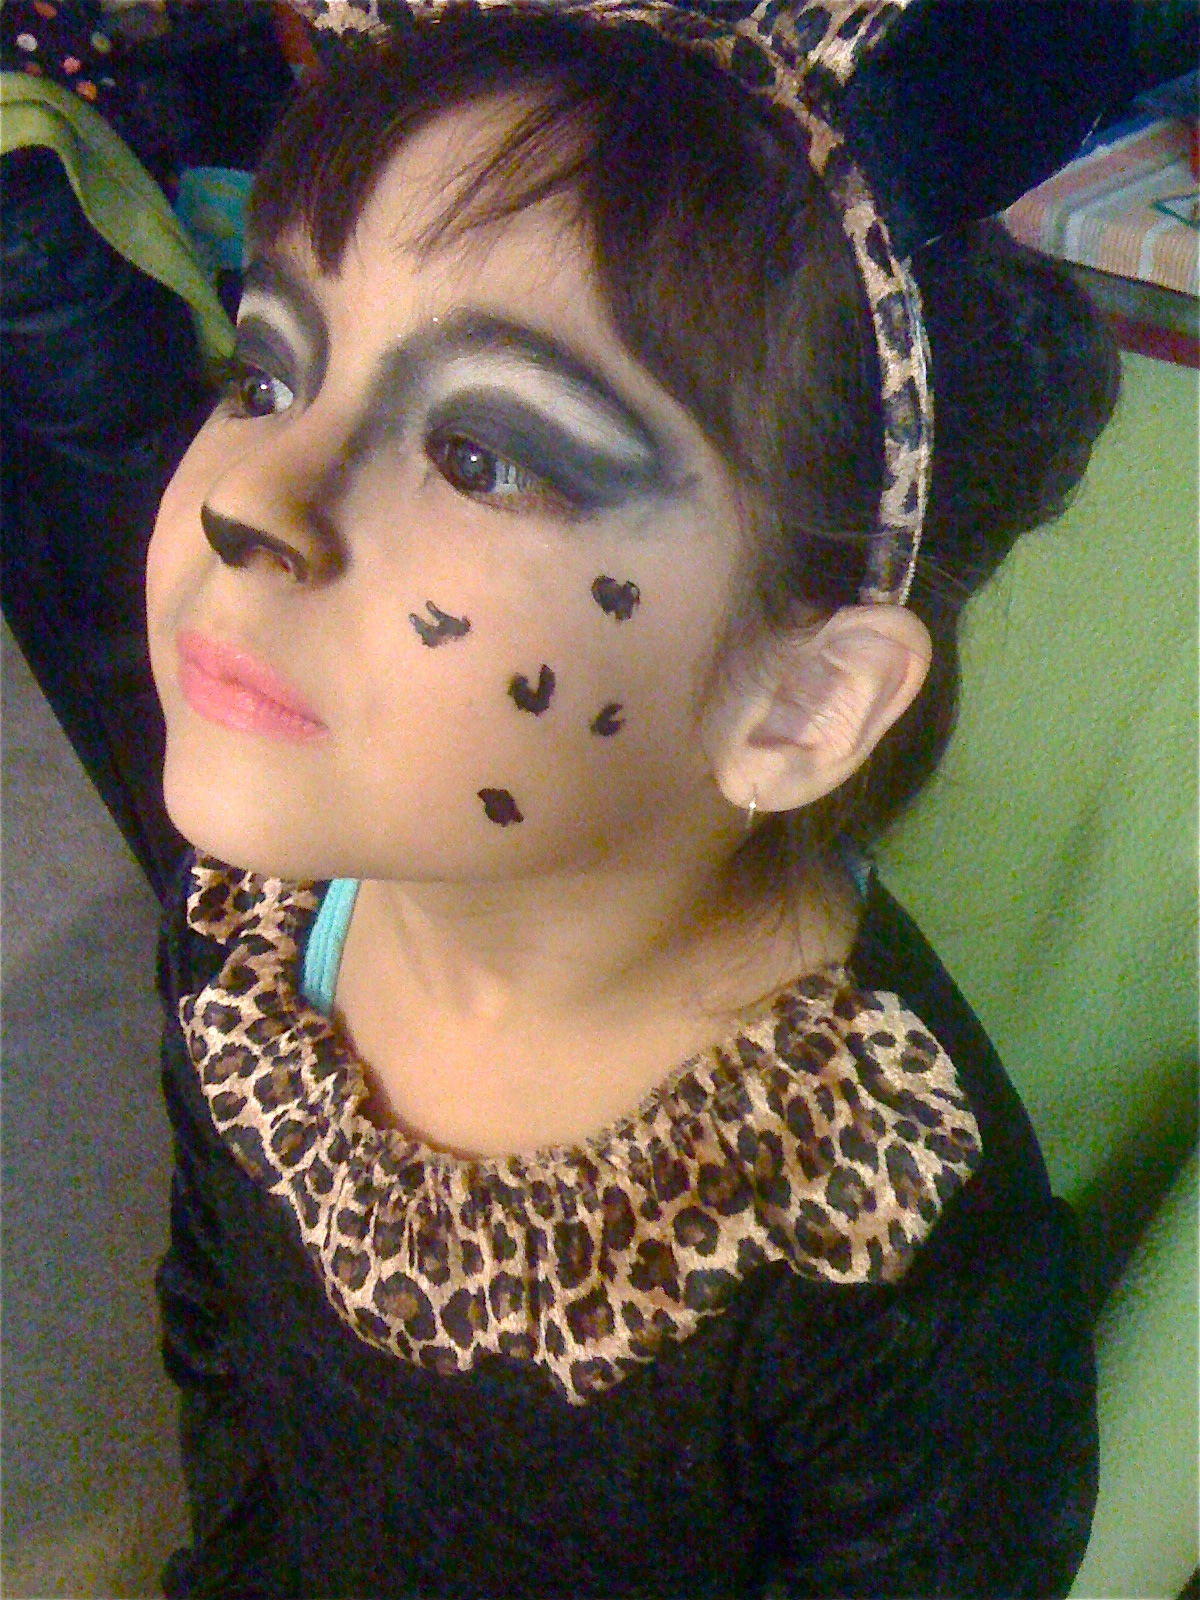 Cheetah Costume Makeup http://runwayorthehighway.wordpress.com/2011/10/31/cute-cheetah-for-halloween/